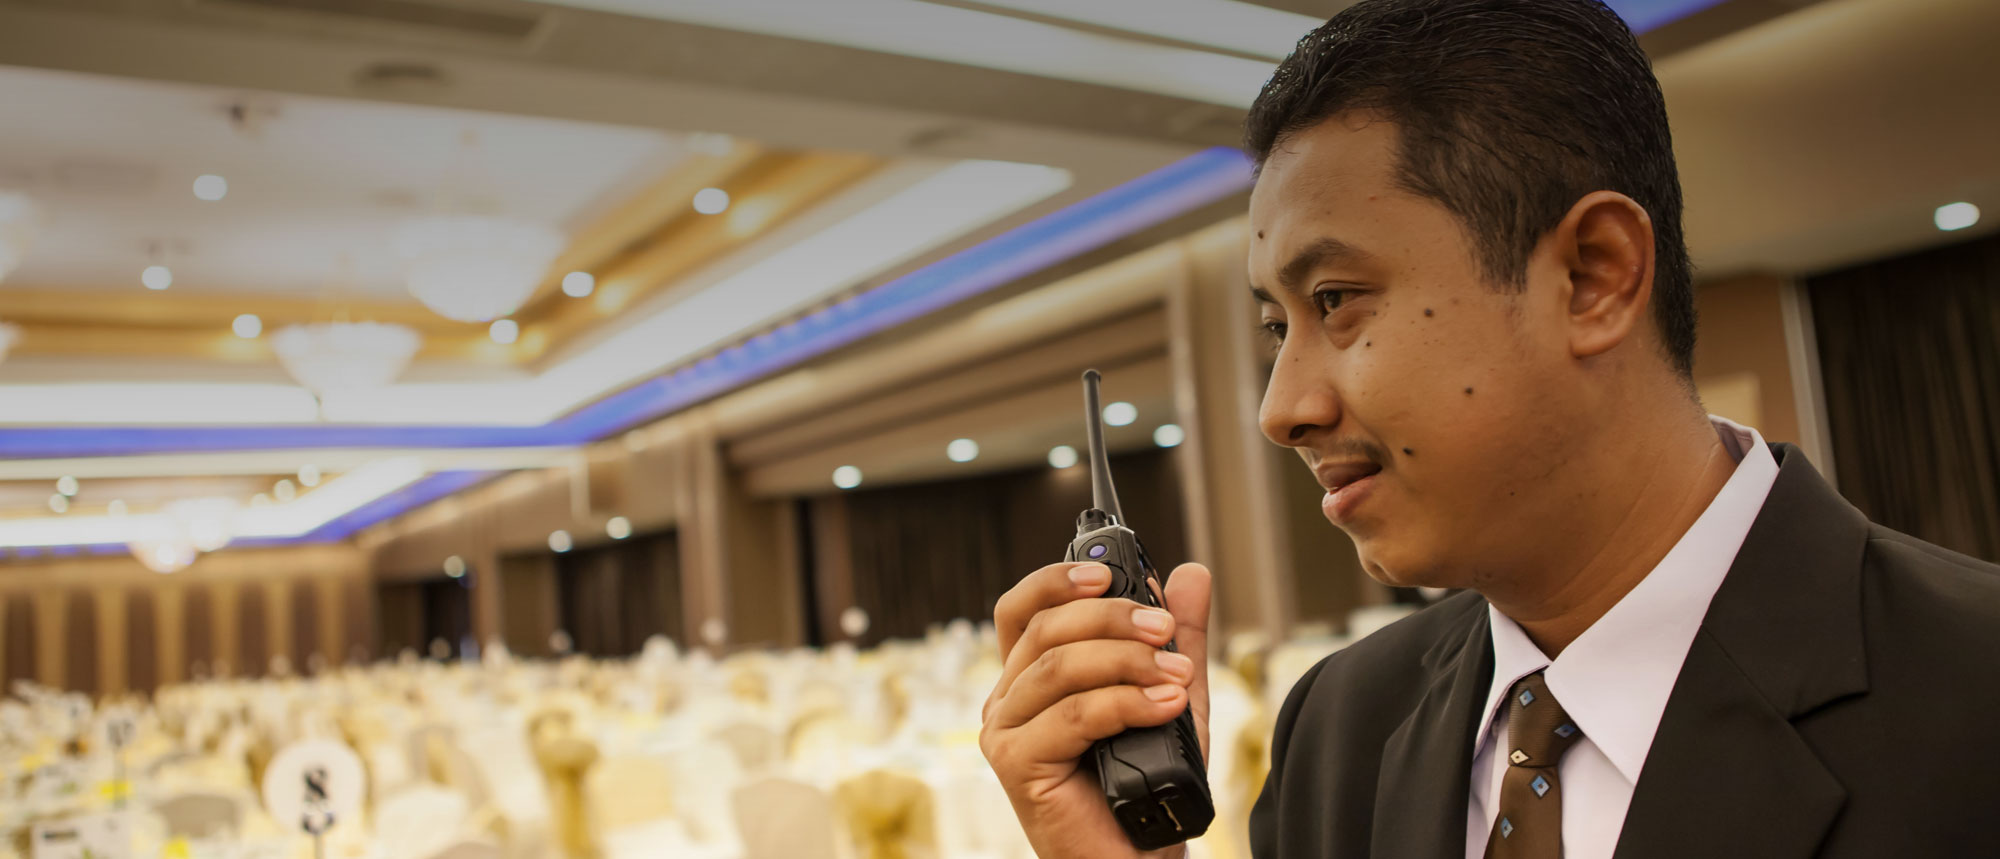 two way radio communications